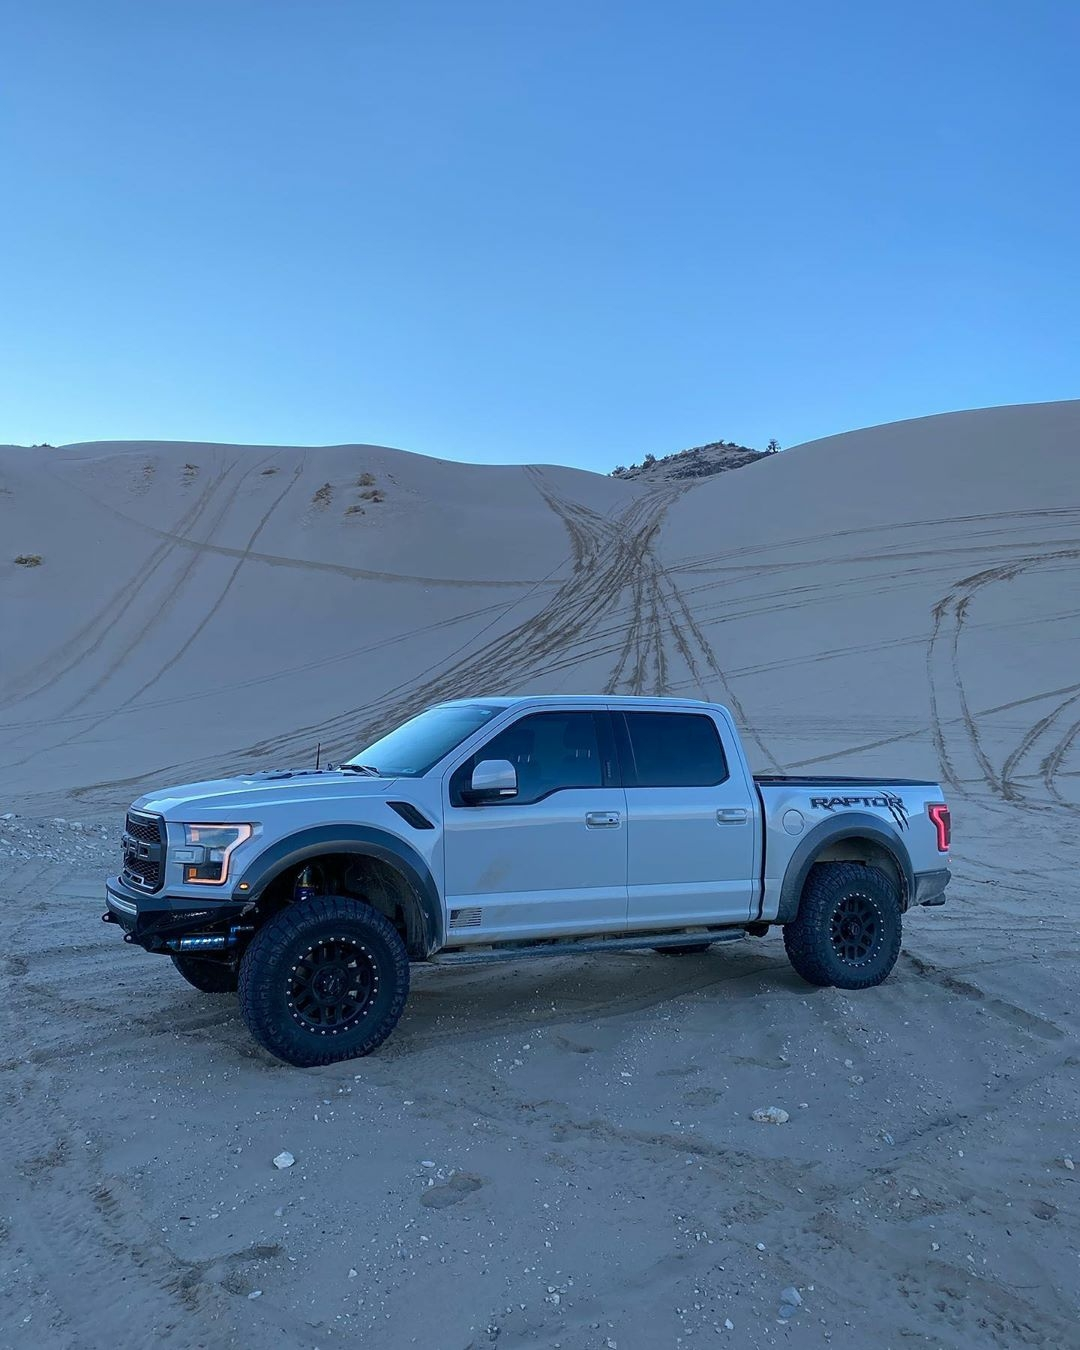 Ford Raptor in the sand